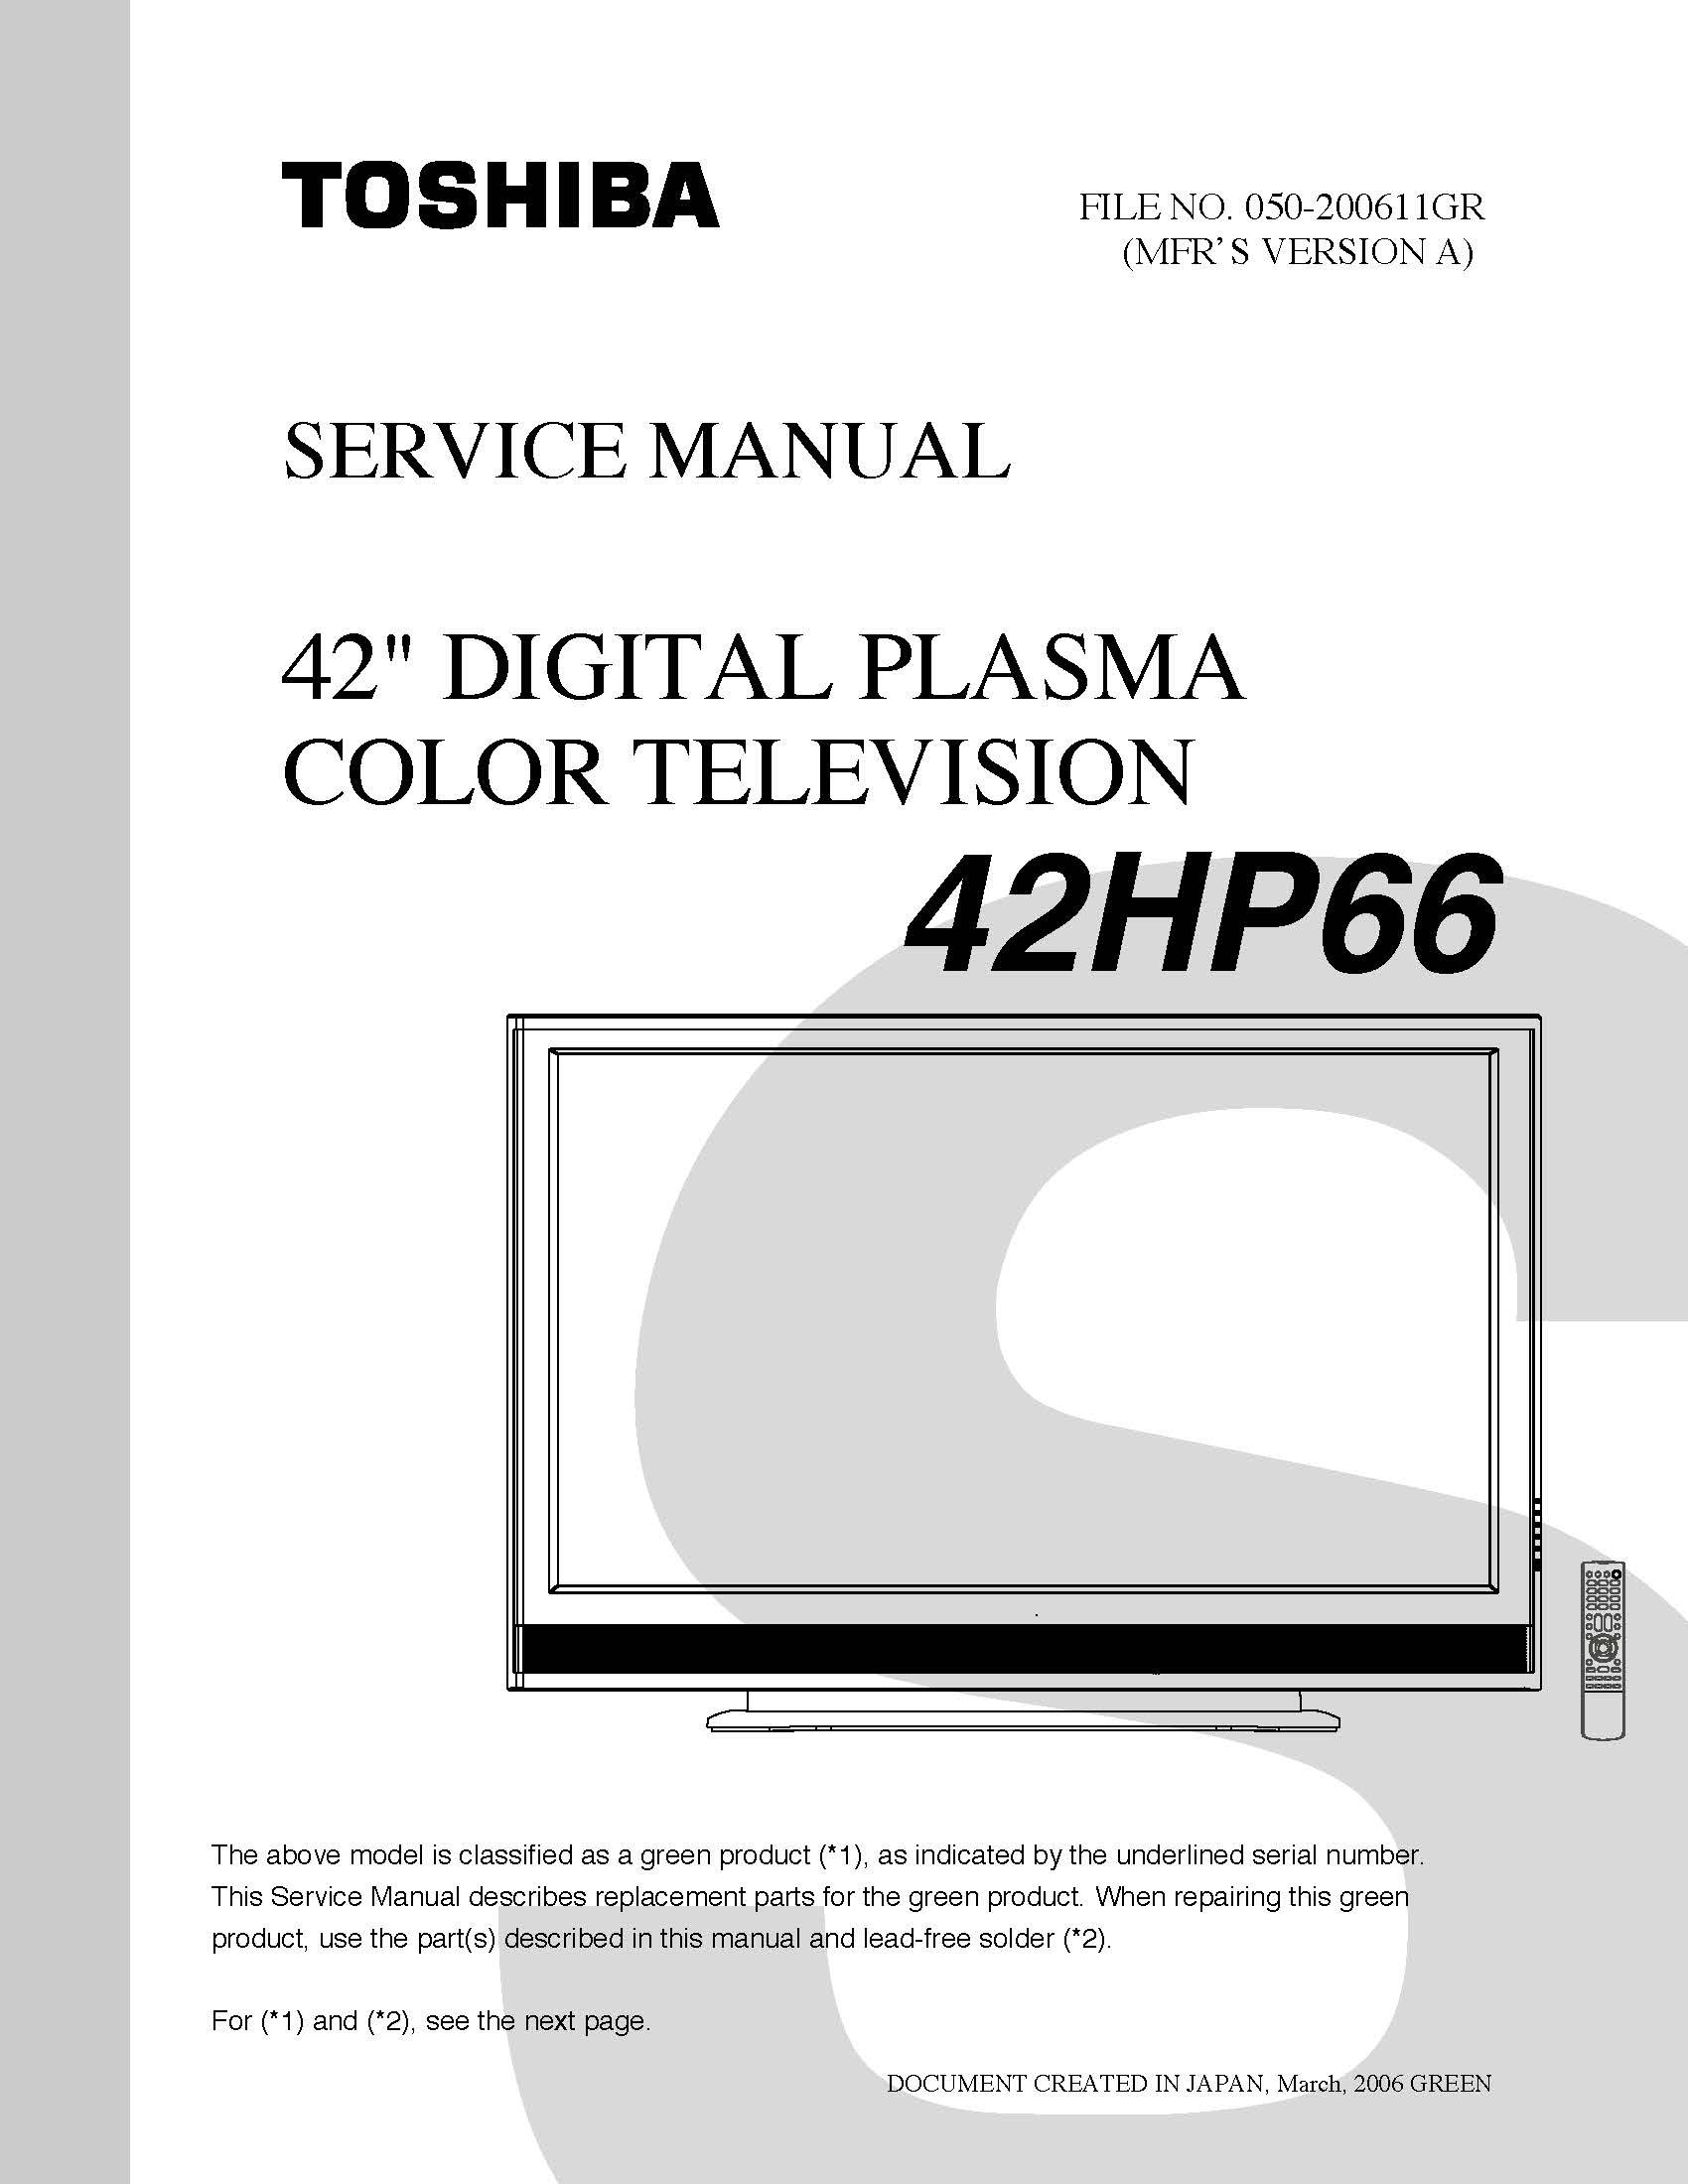 toshiba 42hp66 service manual toshiba amazon com books rh amazon com Plasma TV Stands Plasma TV Stands